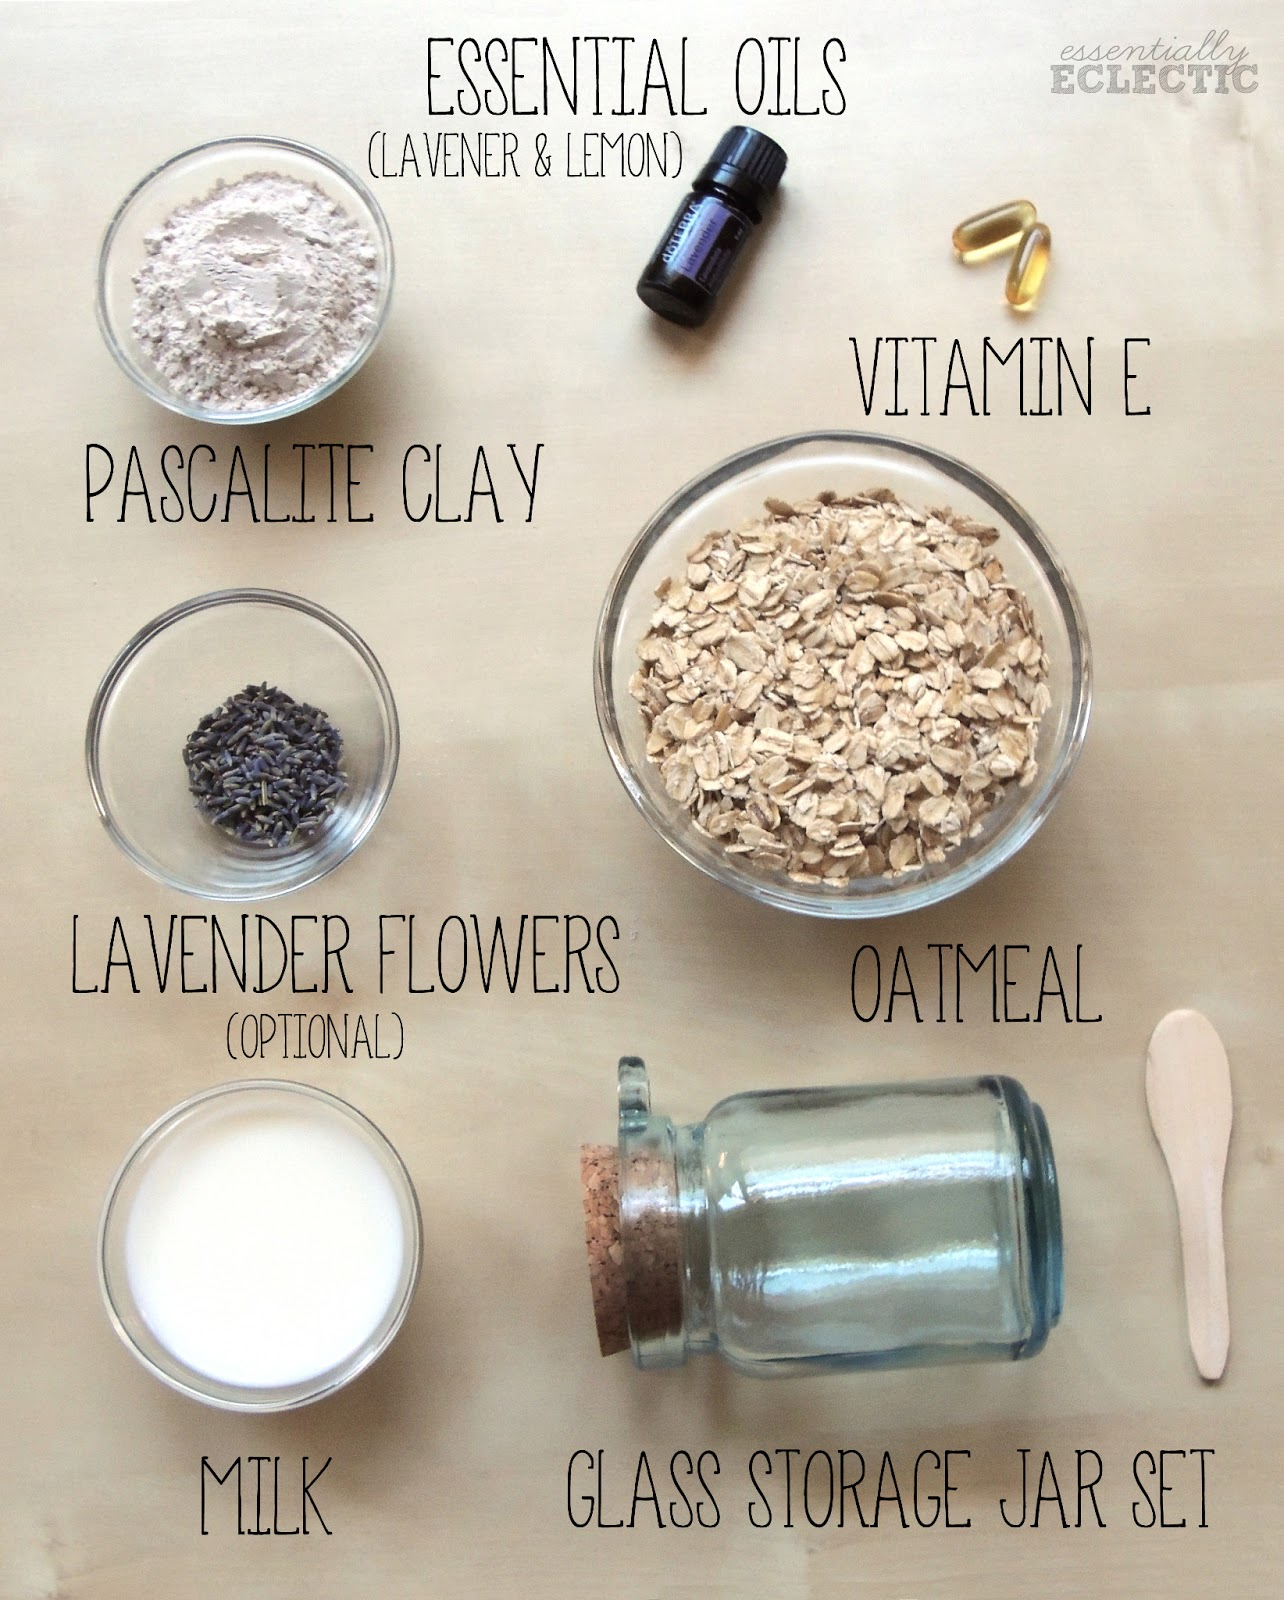 Lavender And Lemon Oatmeal Mud Mask Recipe Mom Makes Joy